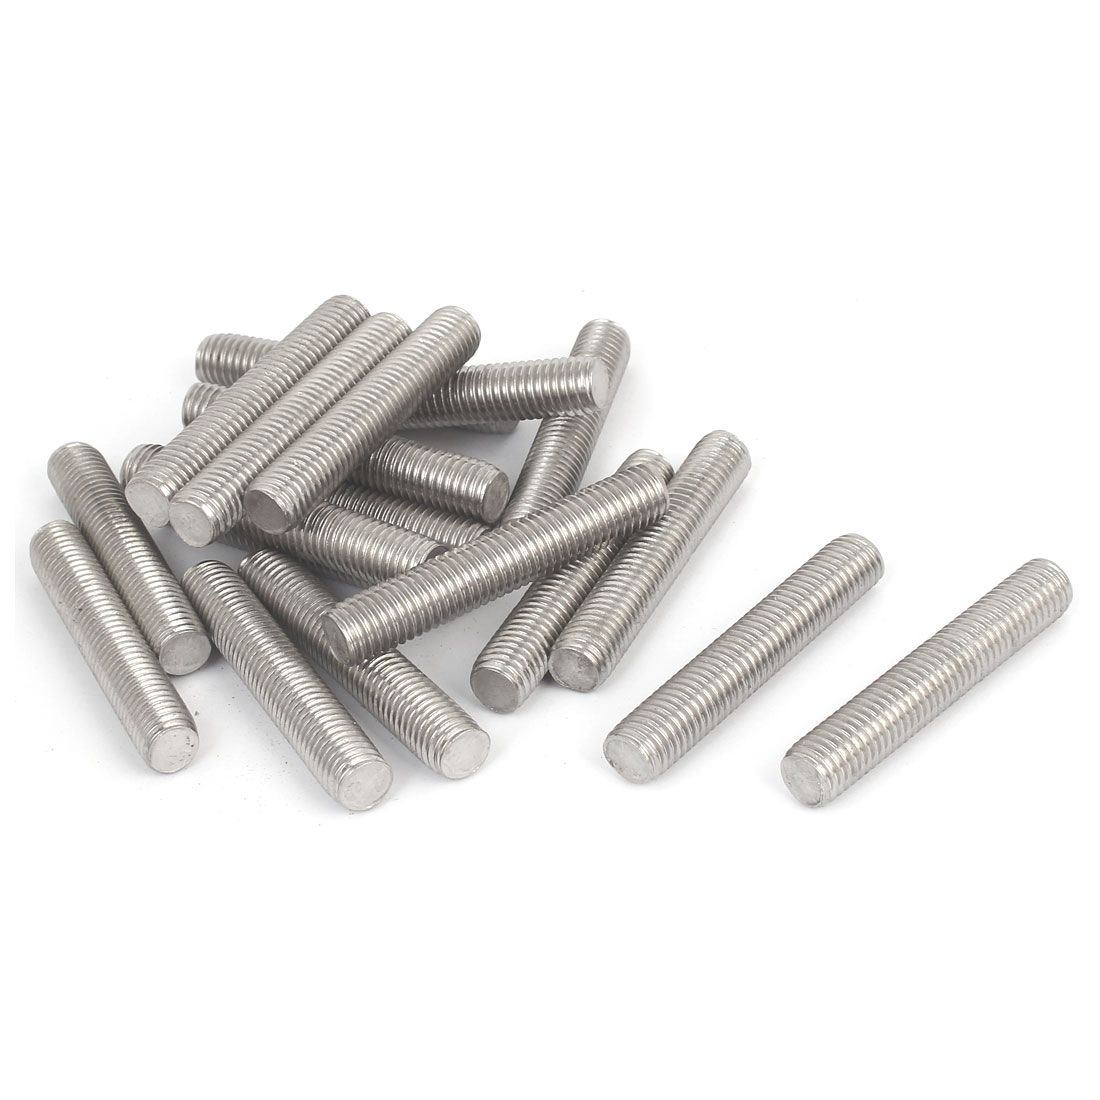 UXCELL M12 X 70Mm 304 Stainless Steel Right Hand Thread Fully Threaded Rod Stud 20Pcs